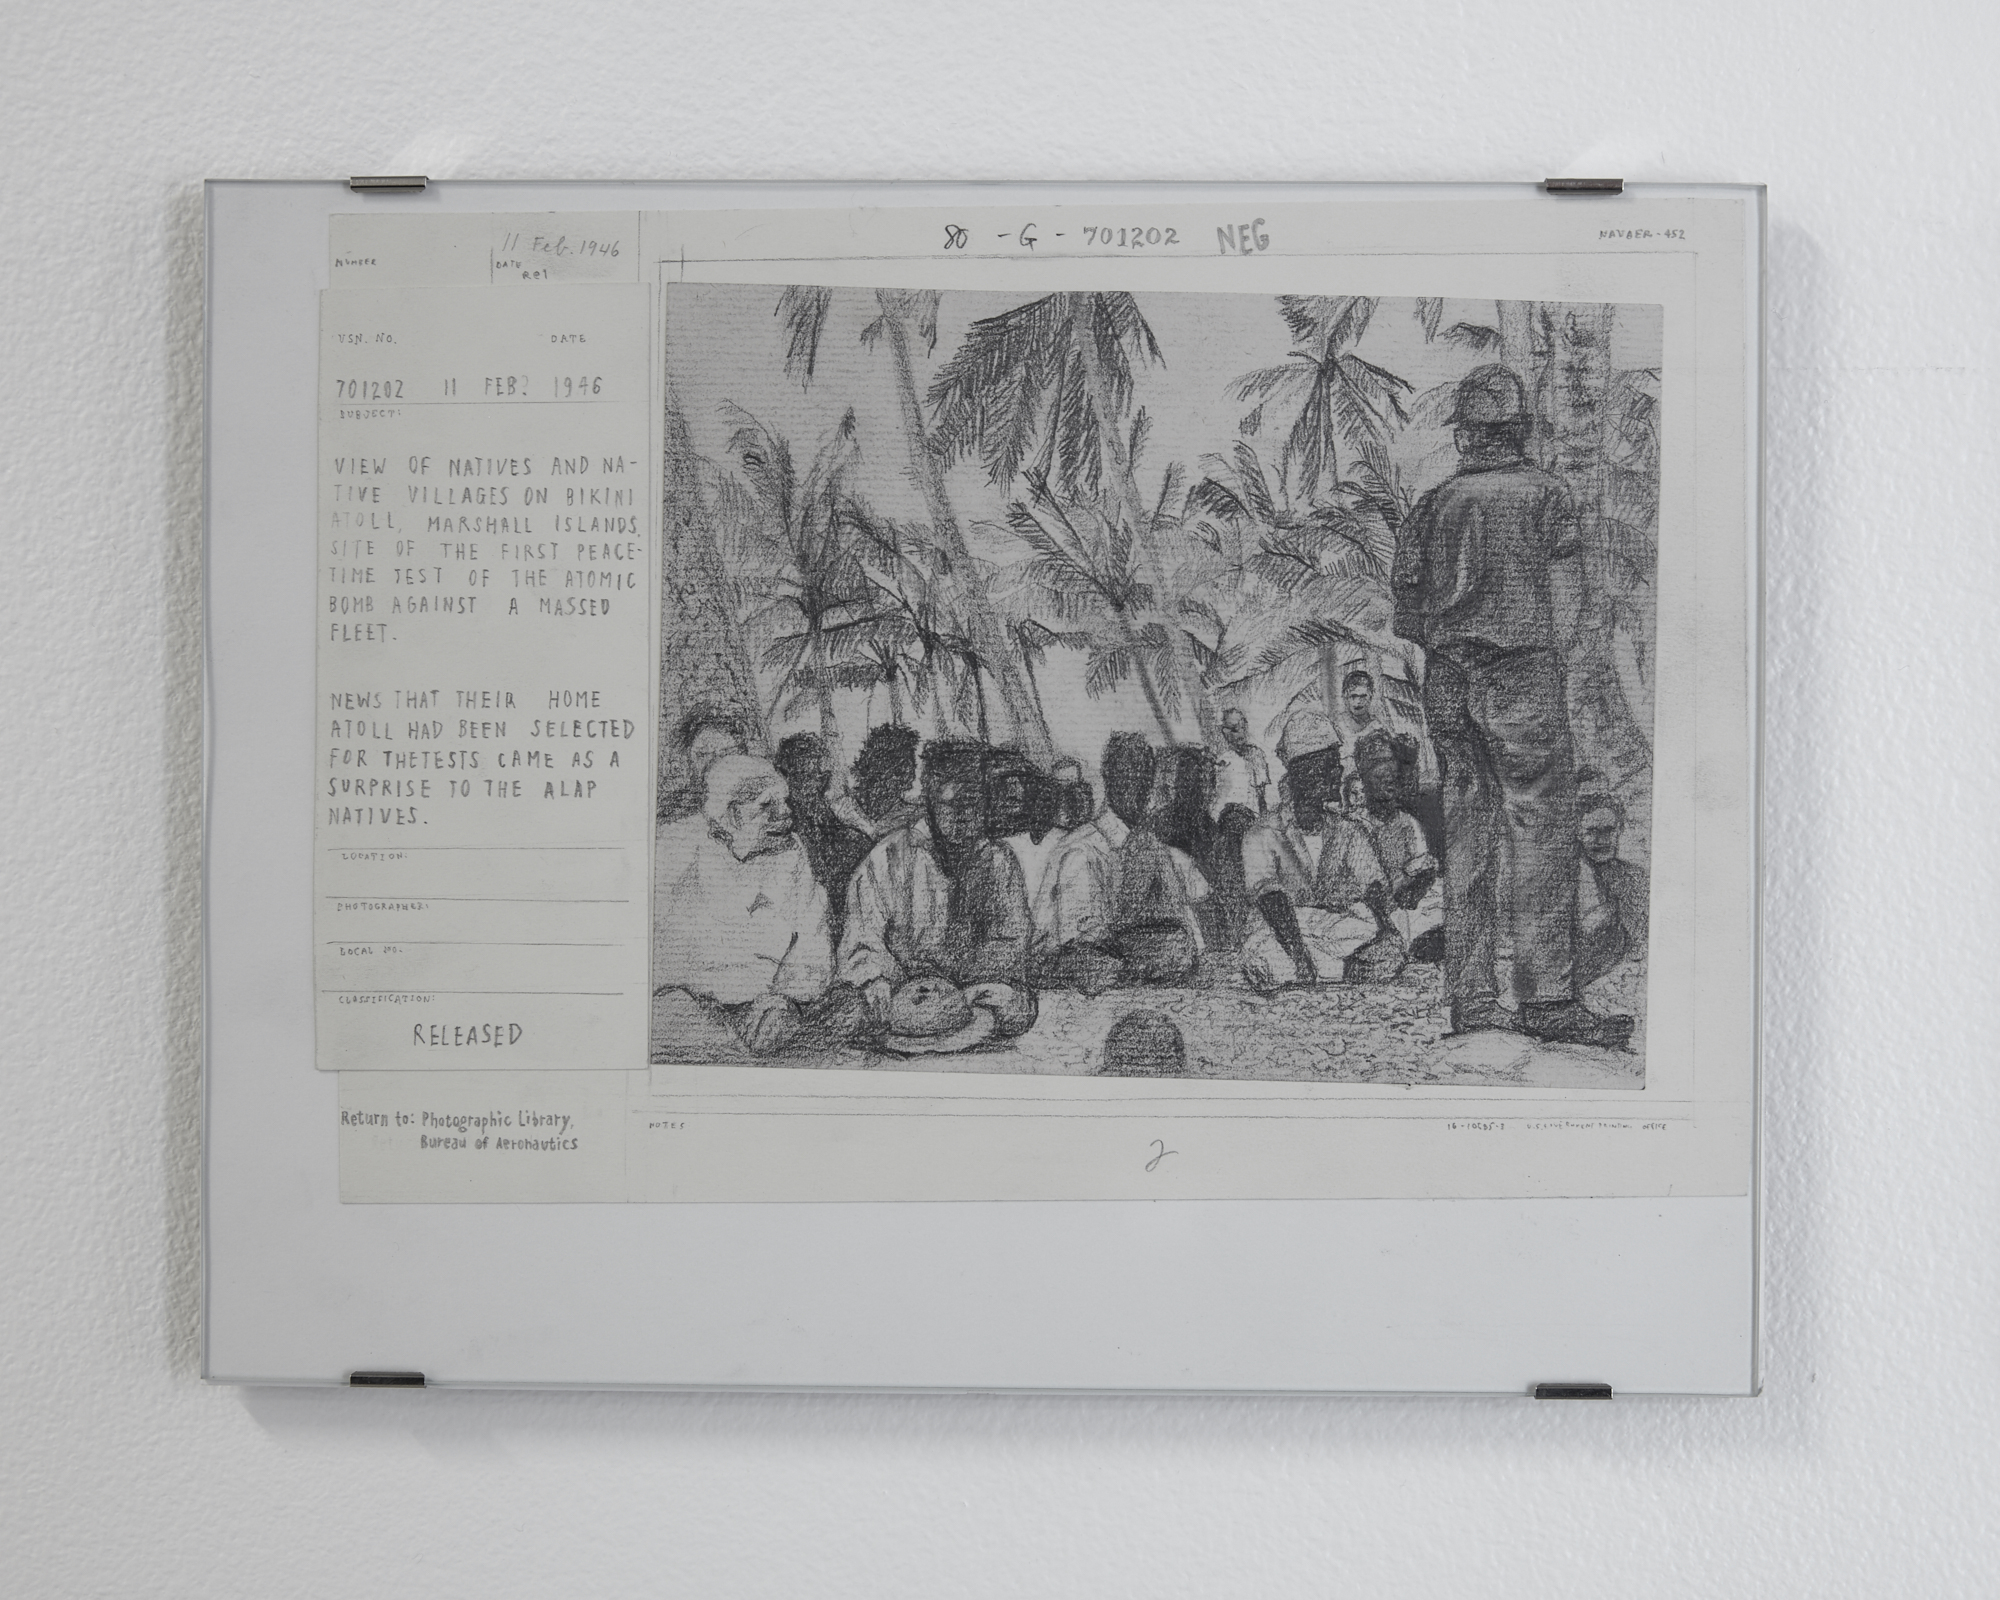 Drawings of archival records, soldier, group of people sitting below tree